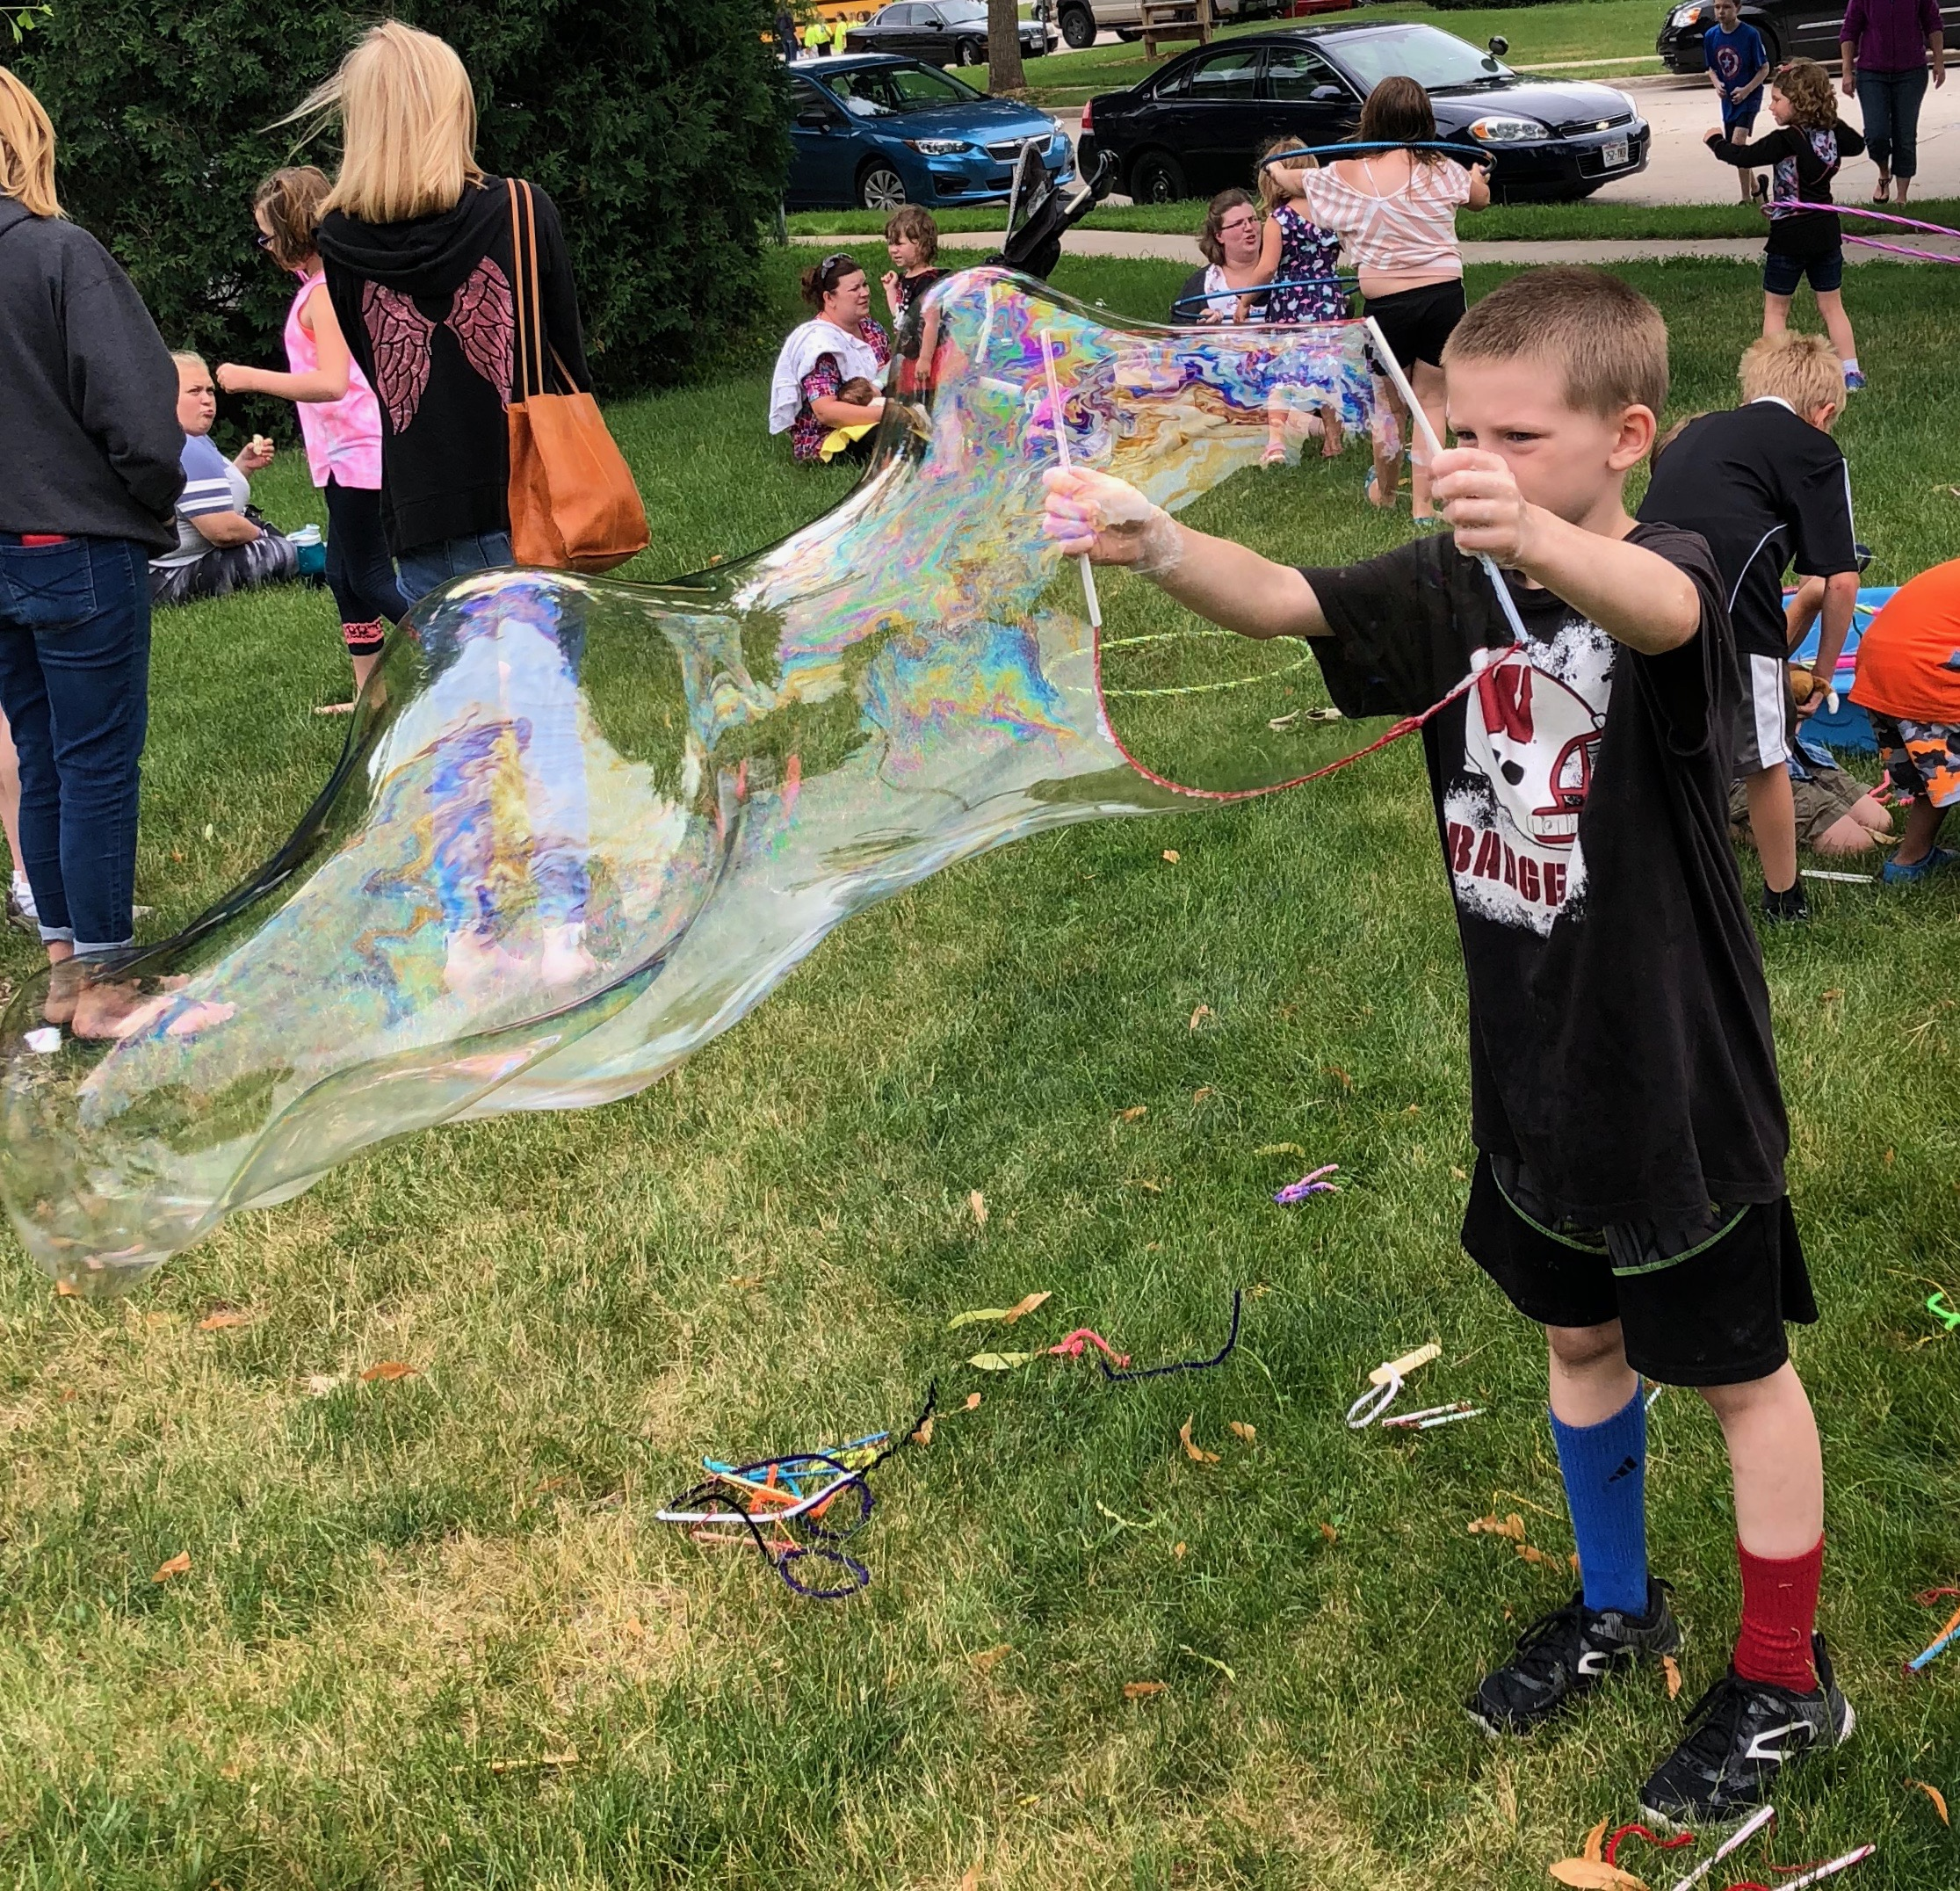 Giant Bubbles at the Park